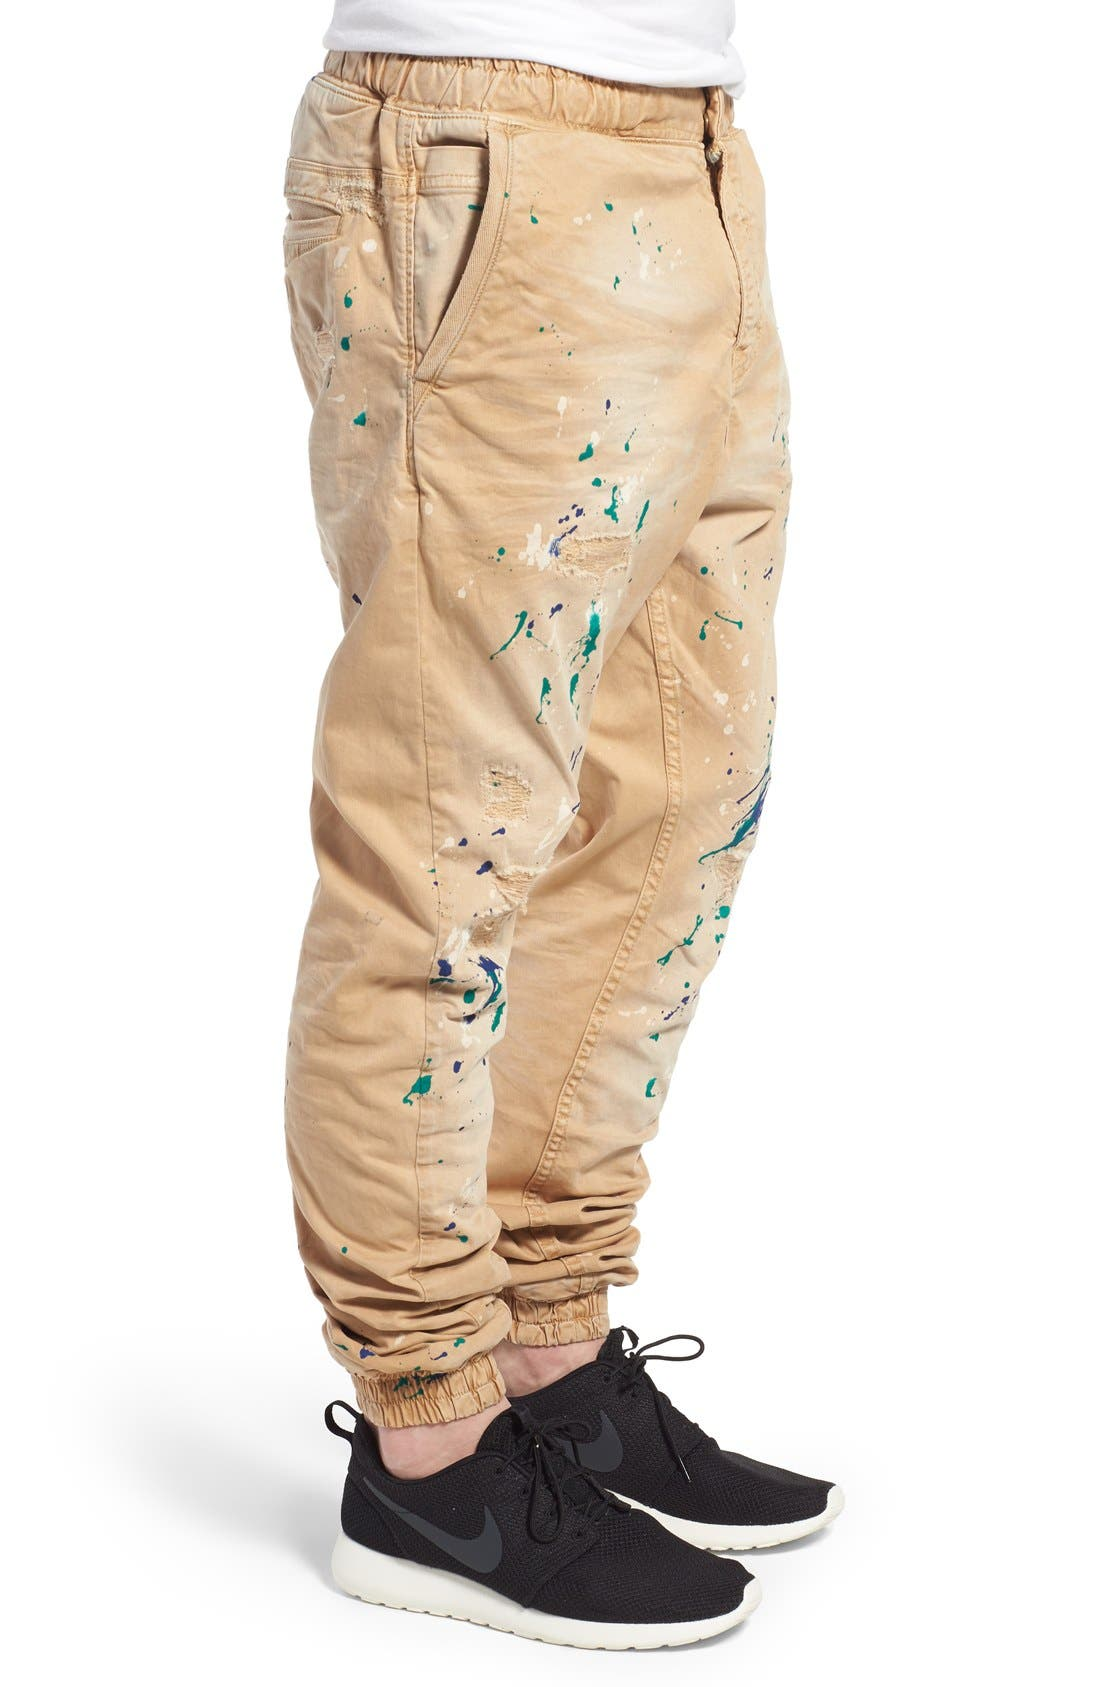 'Damiana' Splatter Paint Stretch Woven Jogger Pants,                             Alternate thumbnail 5, color,                             250